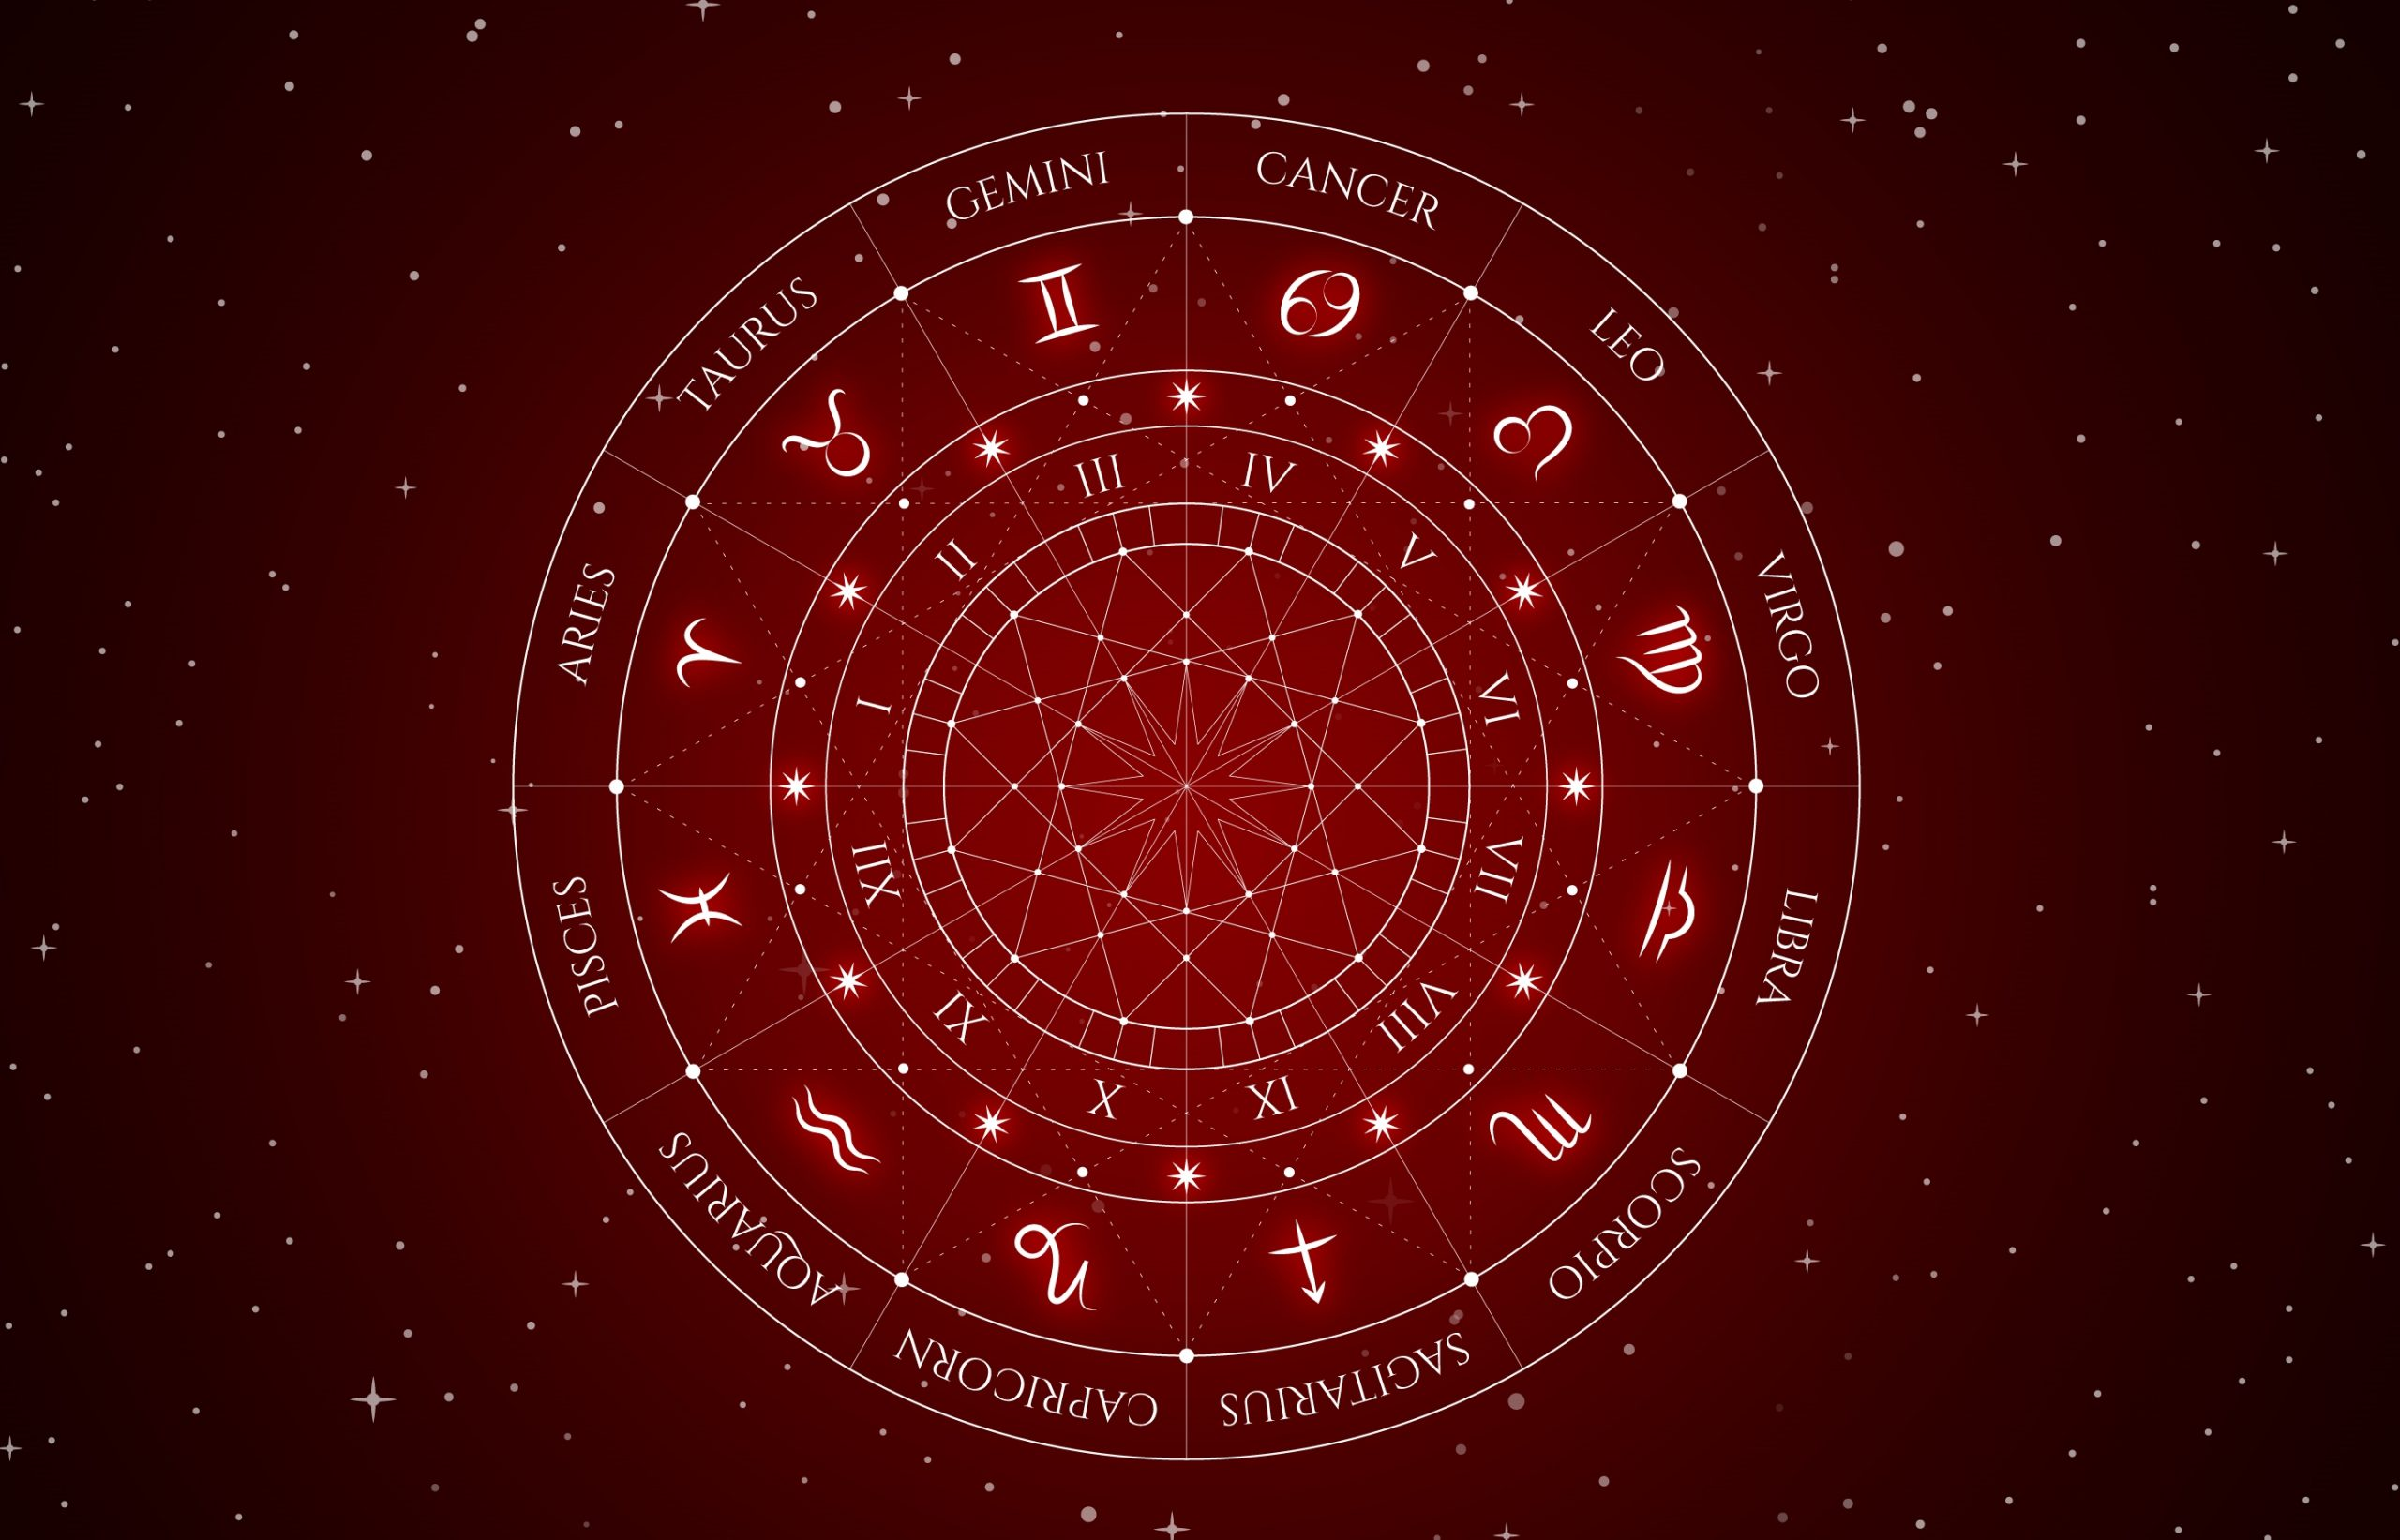 Daily horoscope for 7 july 2020 - Know your day